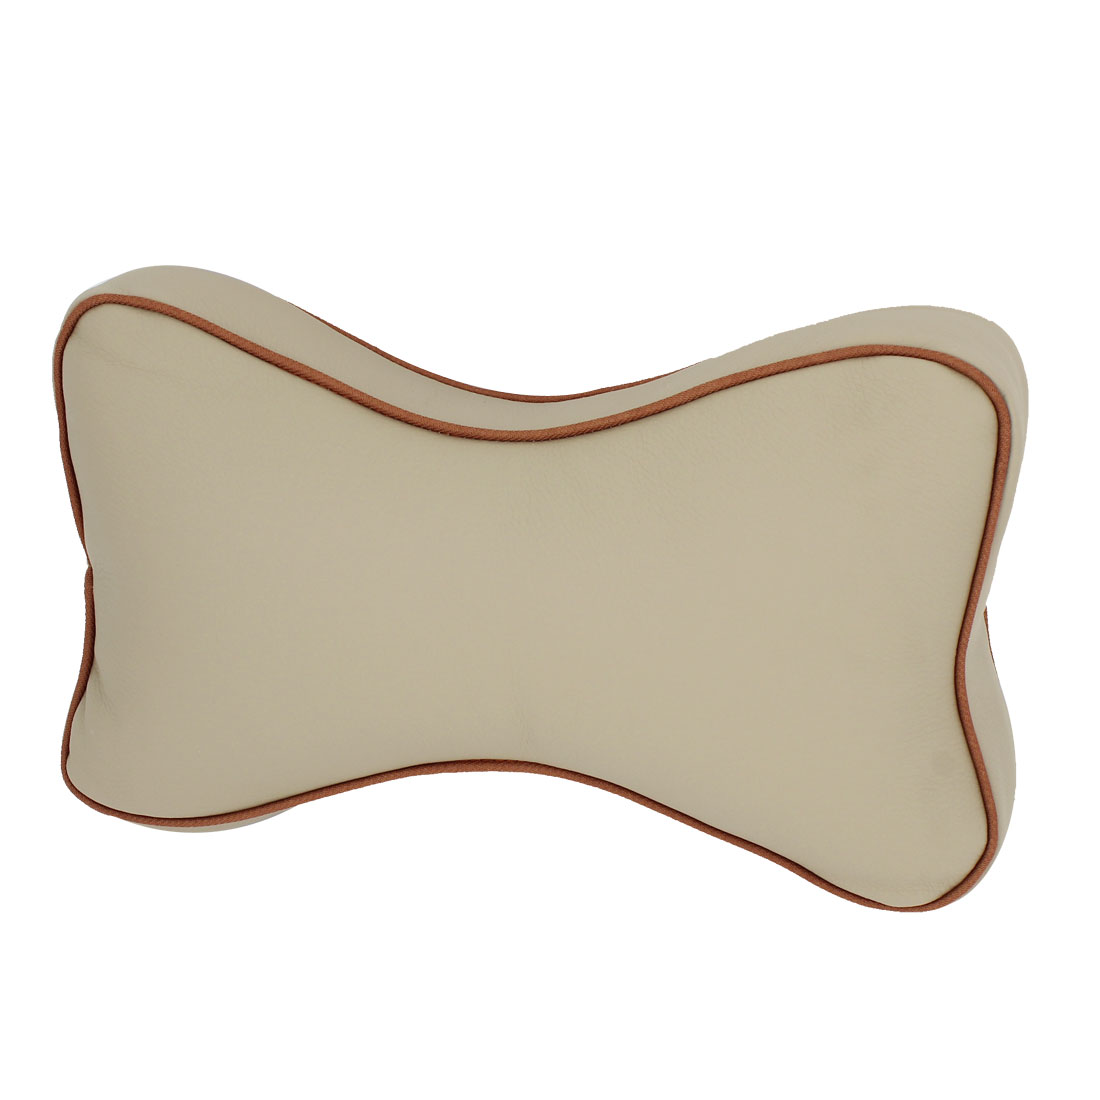 Car Beige Soft Faux Leather Bone Shape Sponge Padded Neck Pillows